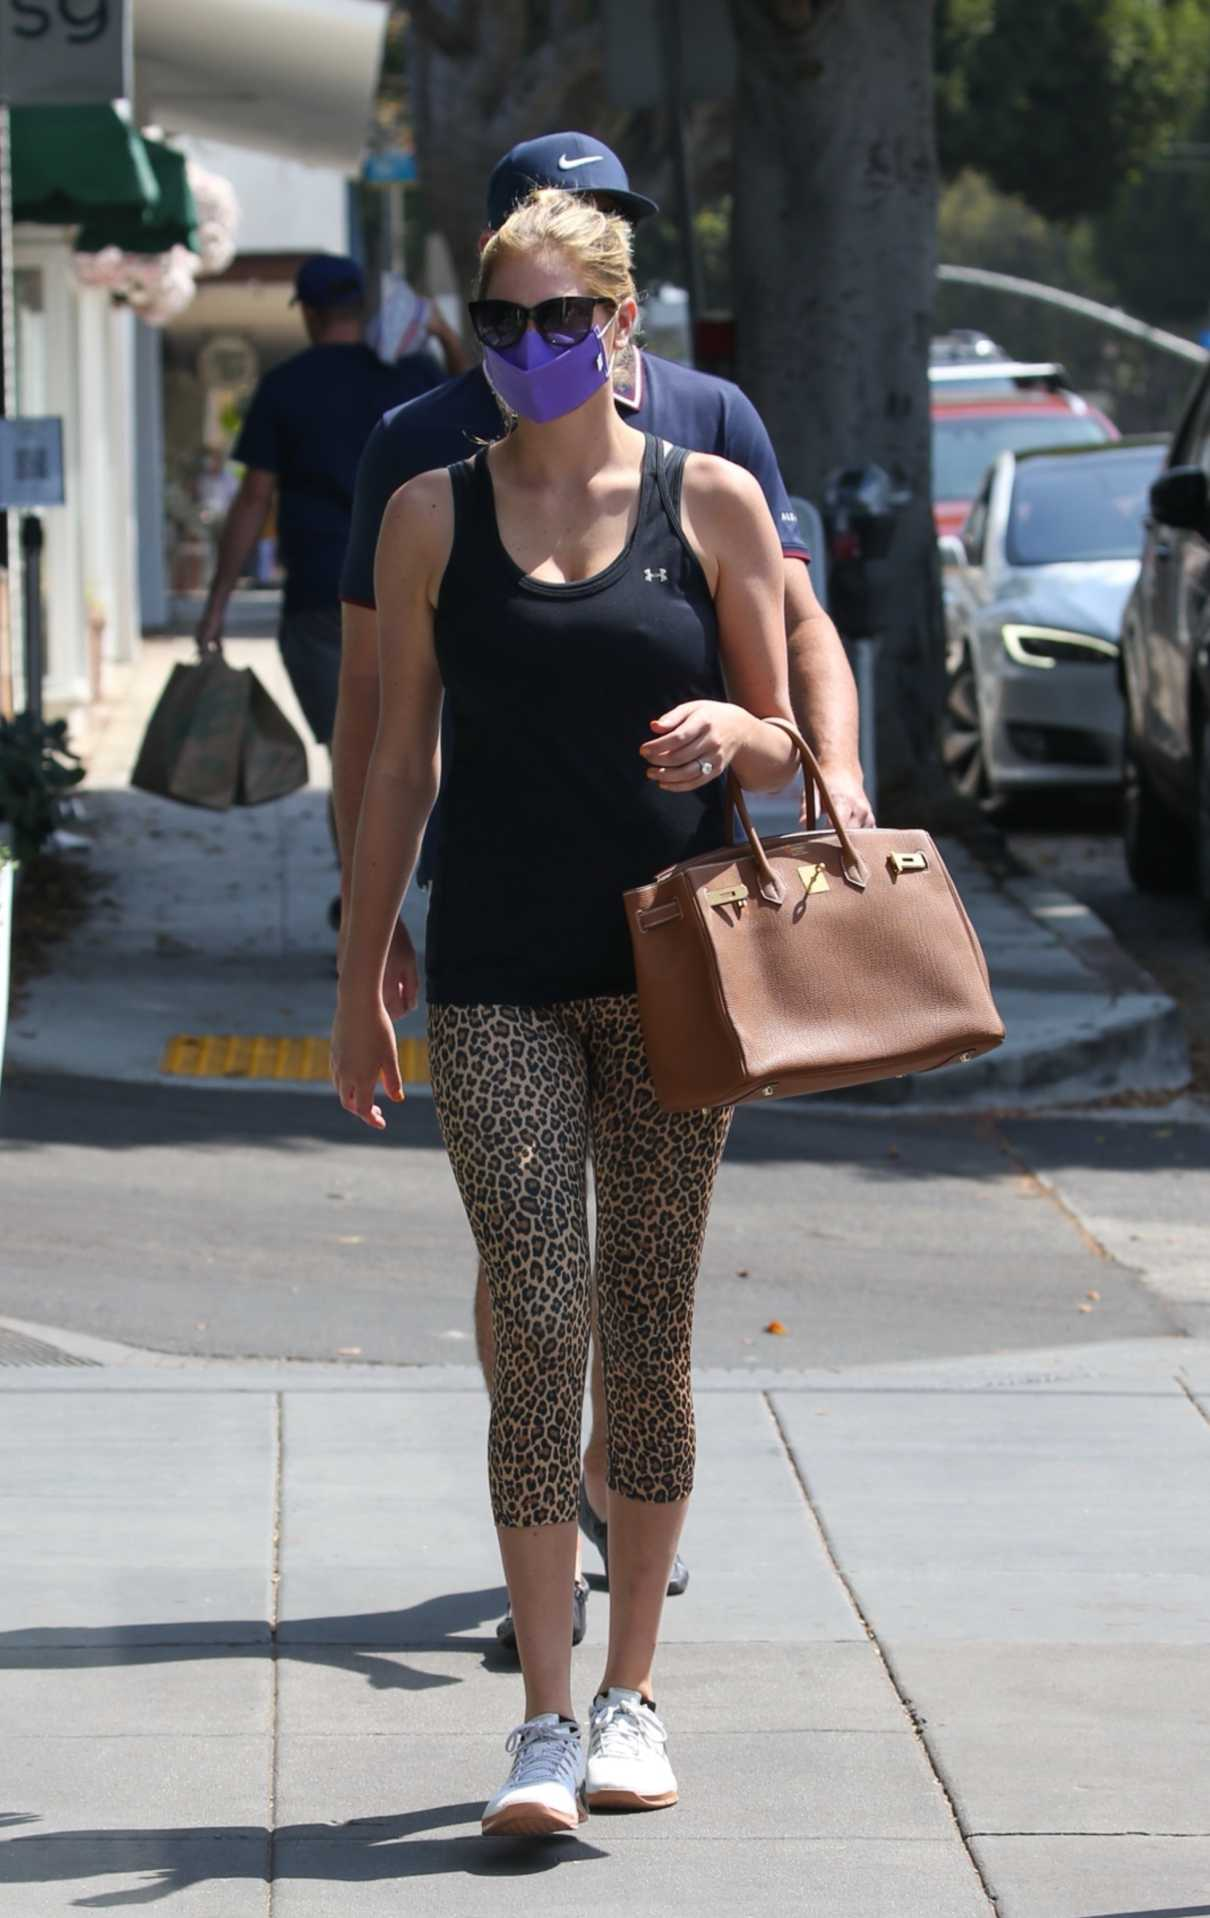 Kate Upton in a Black Tank Top Arrives at Beauty Park Medical Spa in Santa Monica 08/03/2021